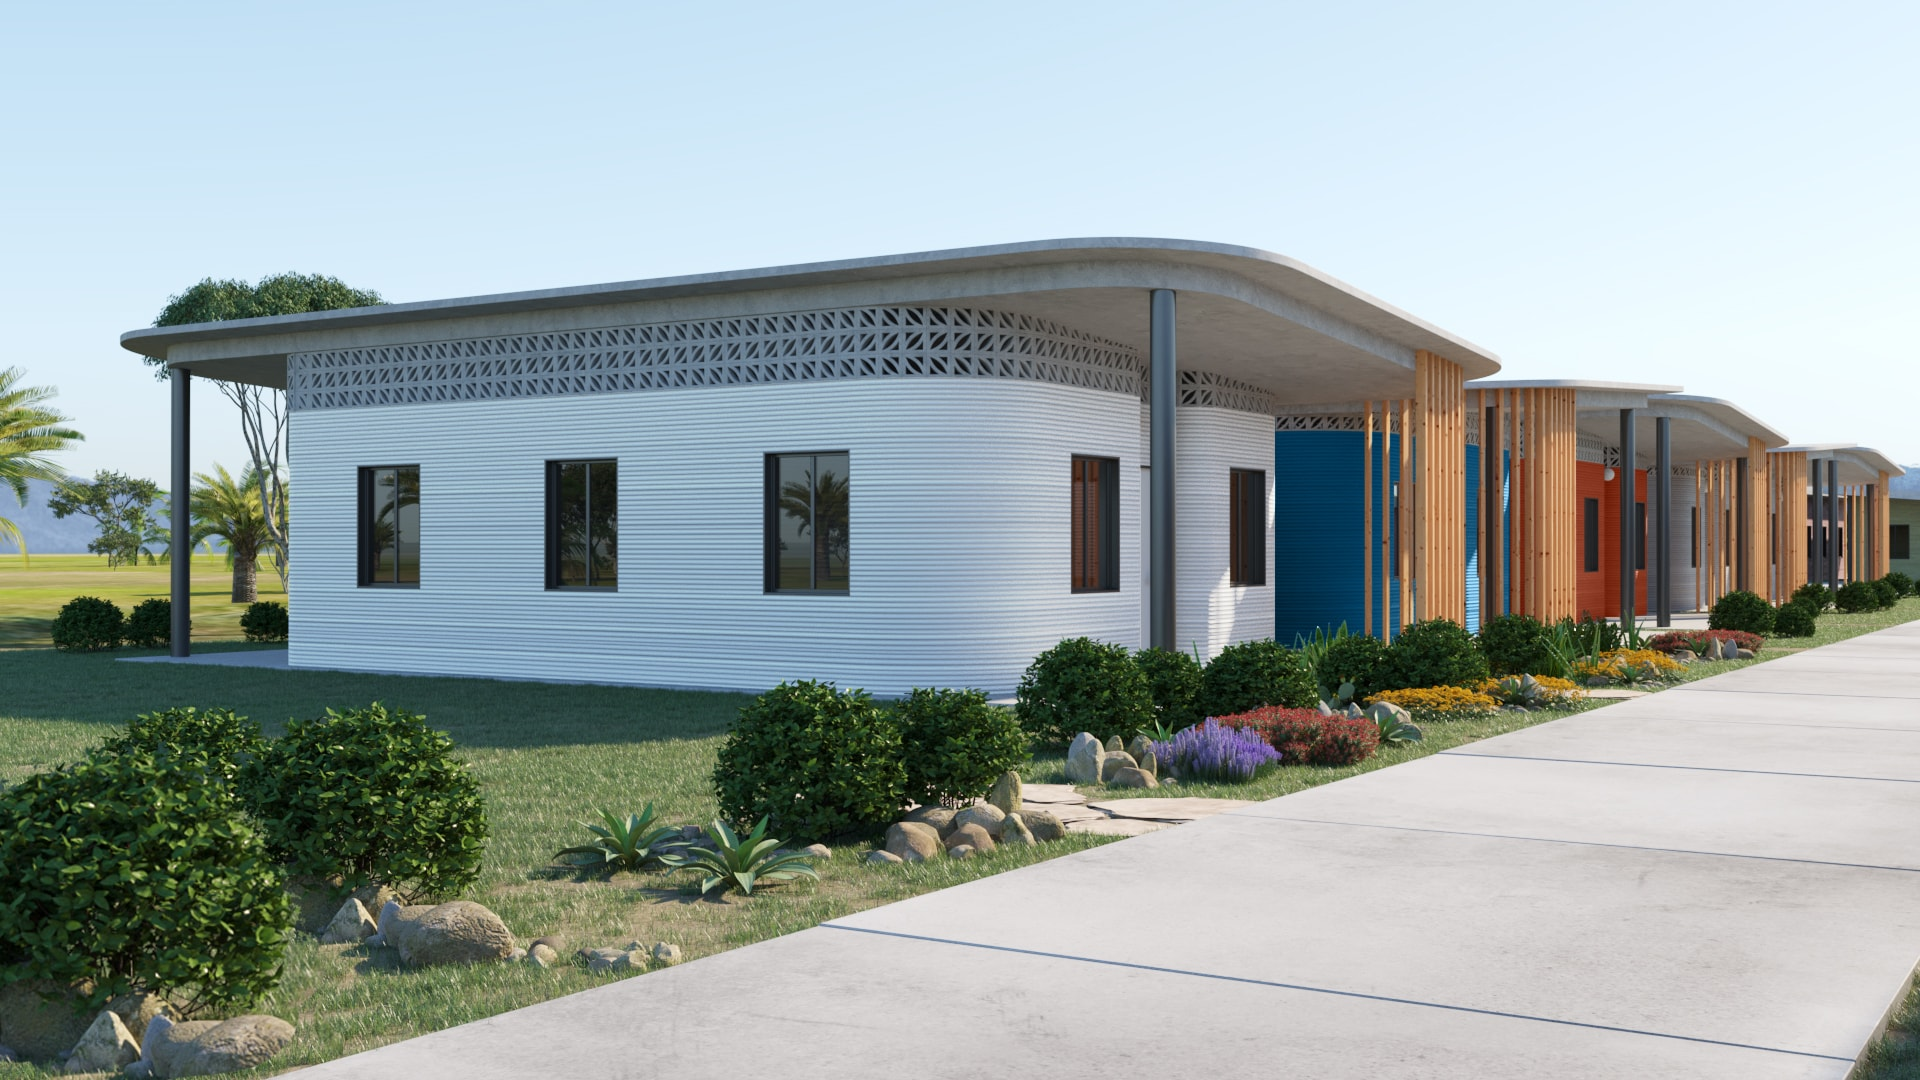 Houses in 3D-Printed Community - Fuseproject and New Story Revolutionizing Homebuilding to End Global Homelessness